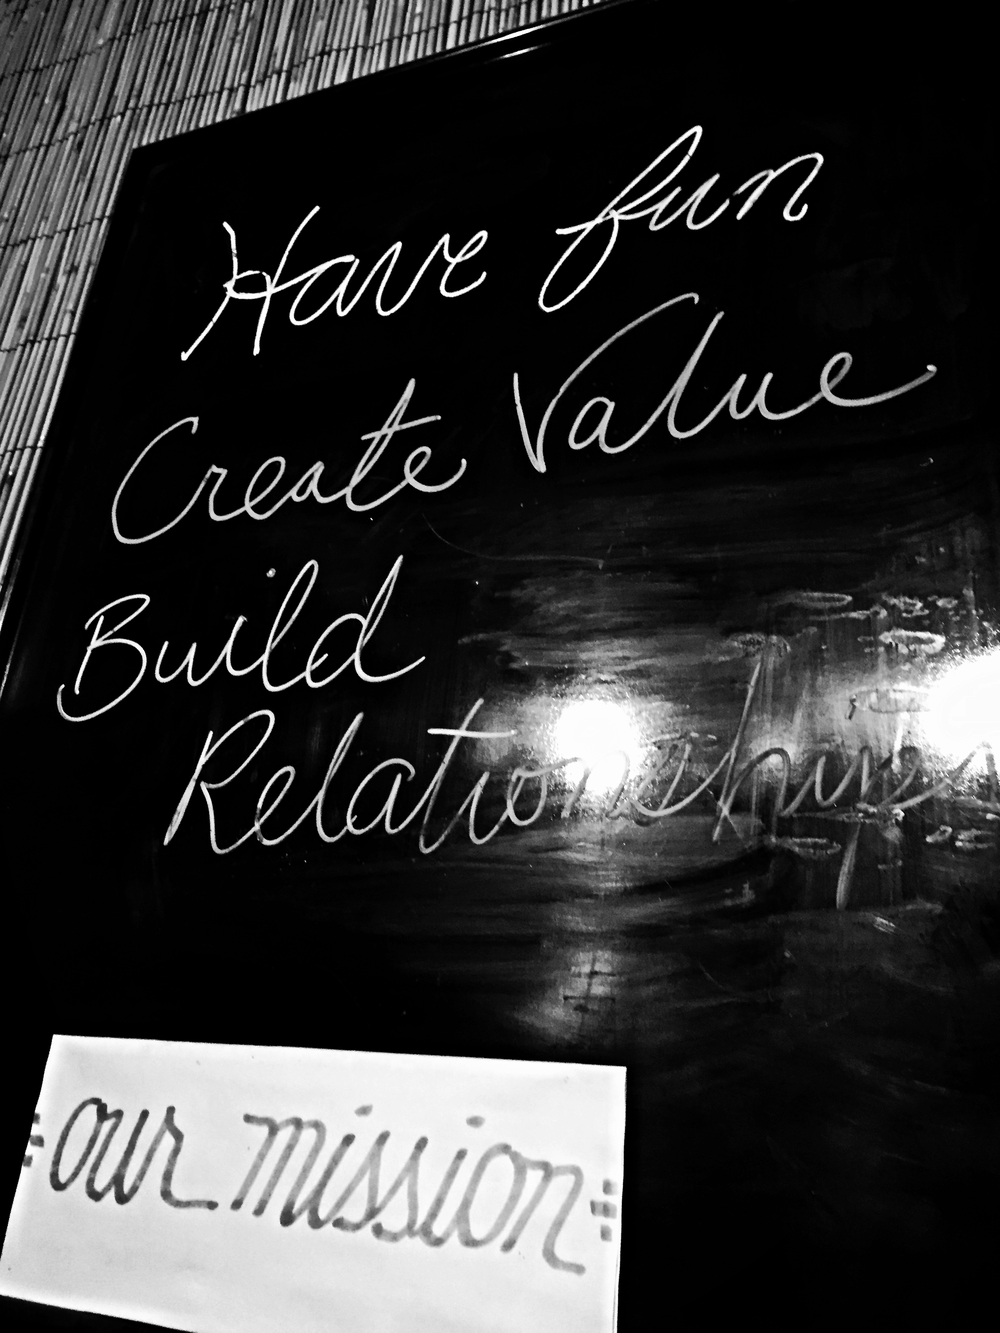 Have fun. Create value. build relationships.